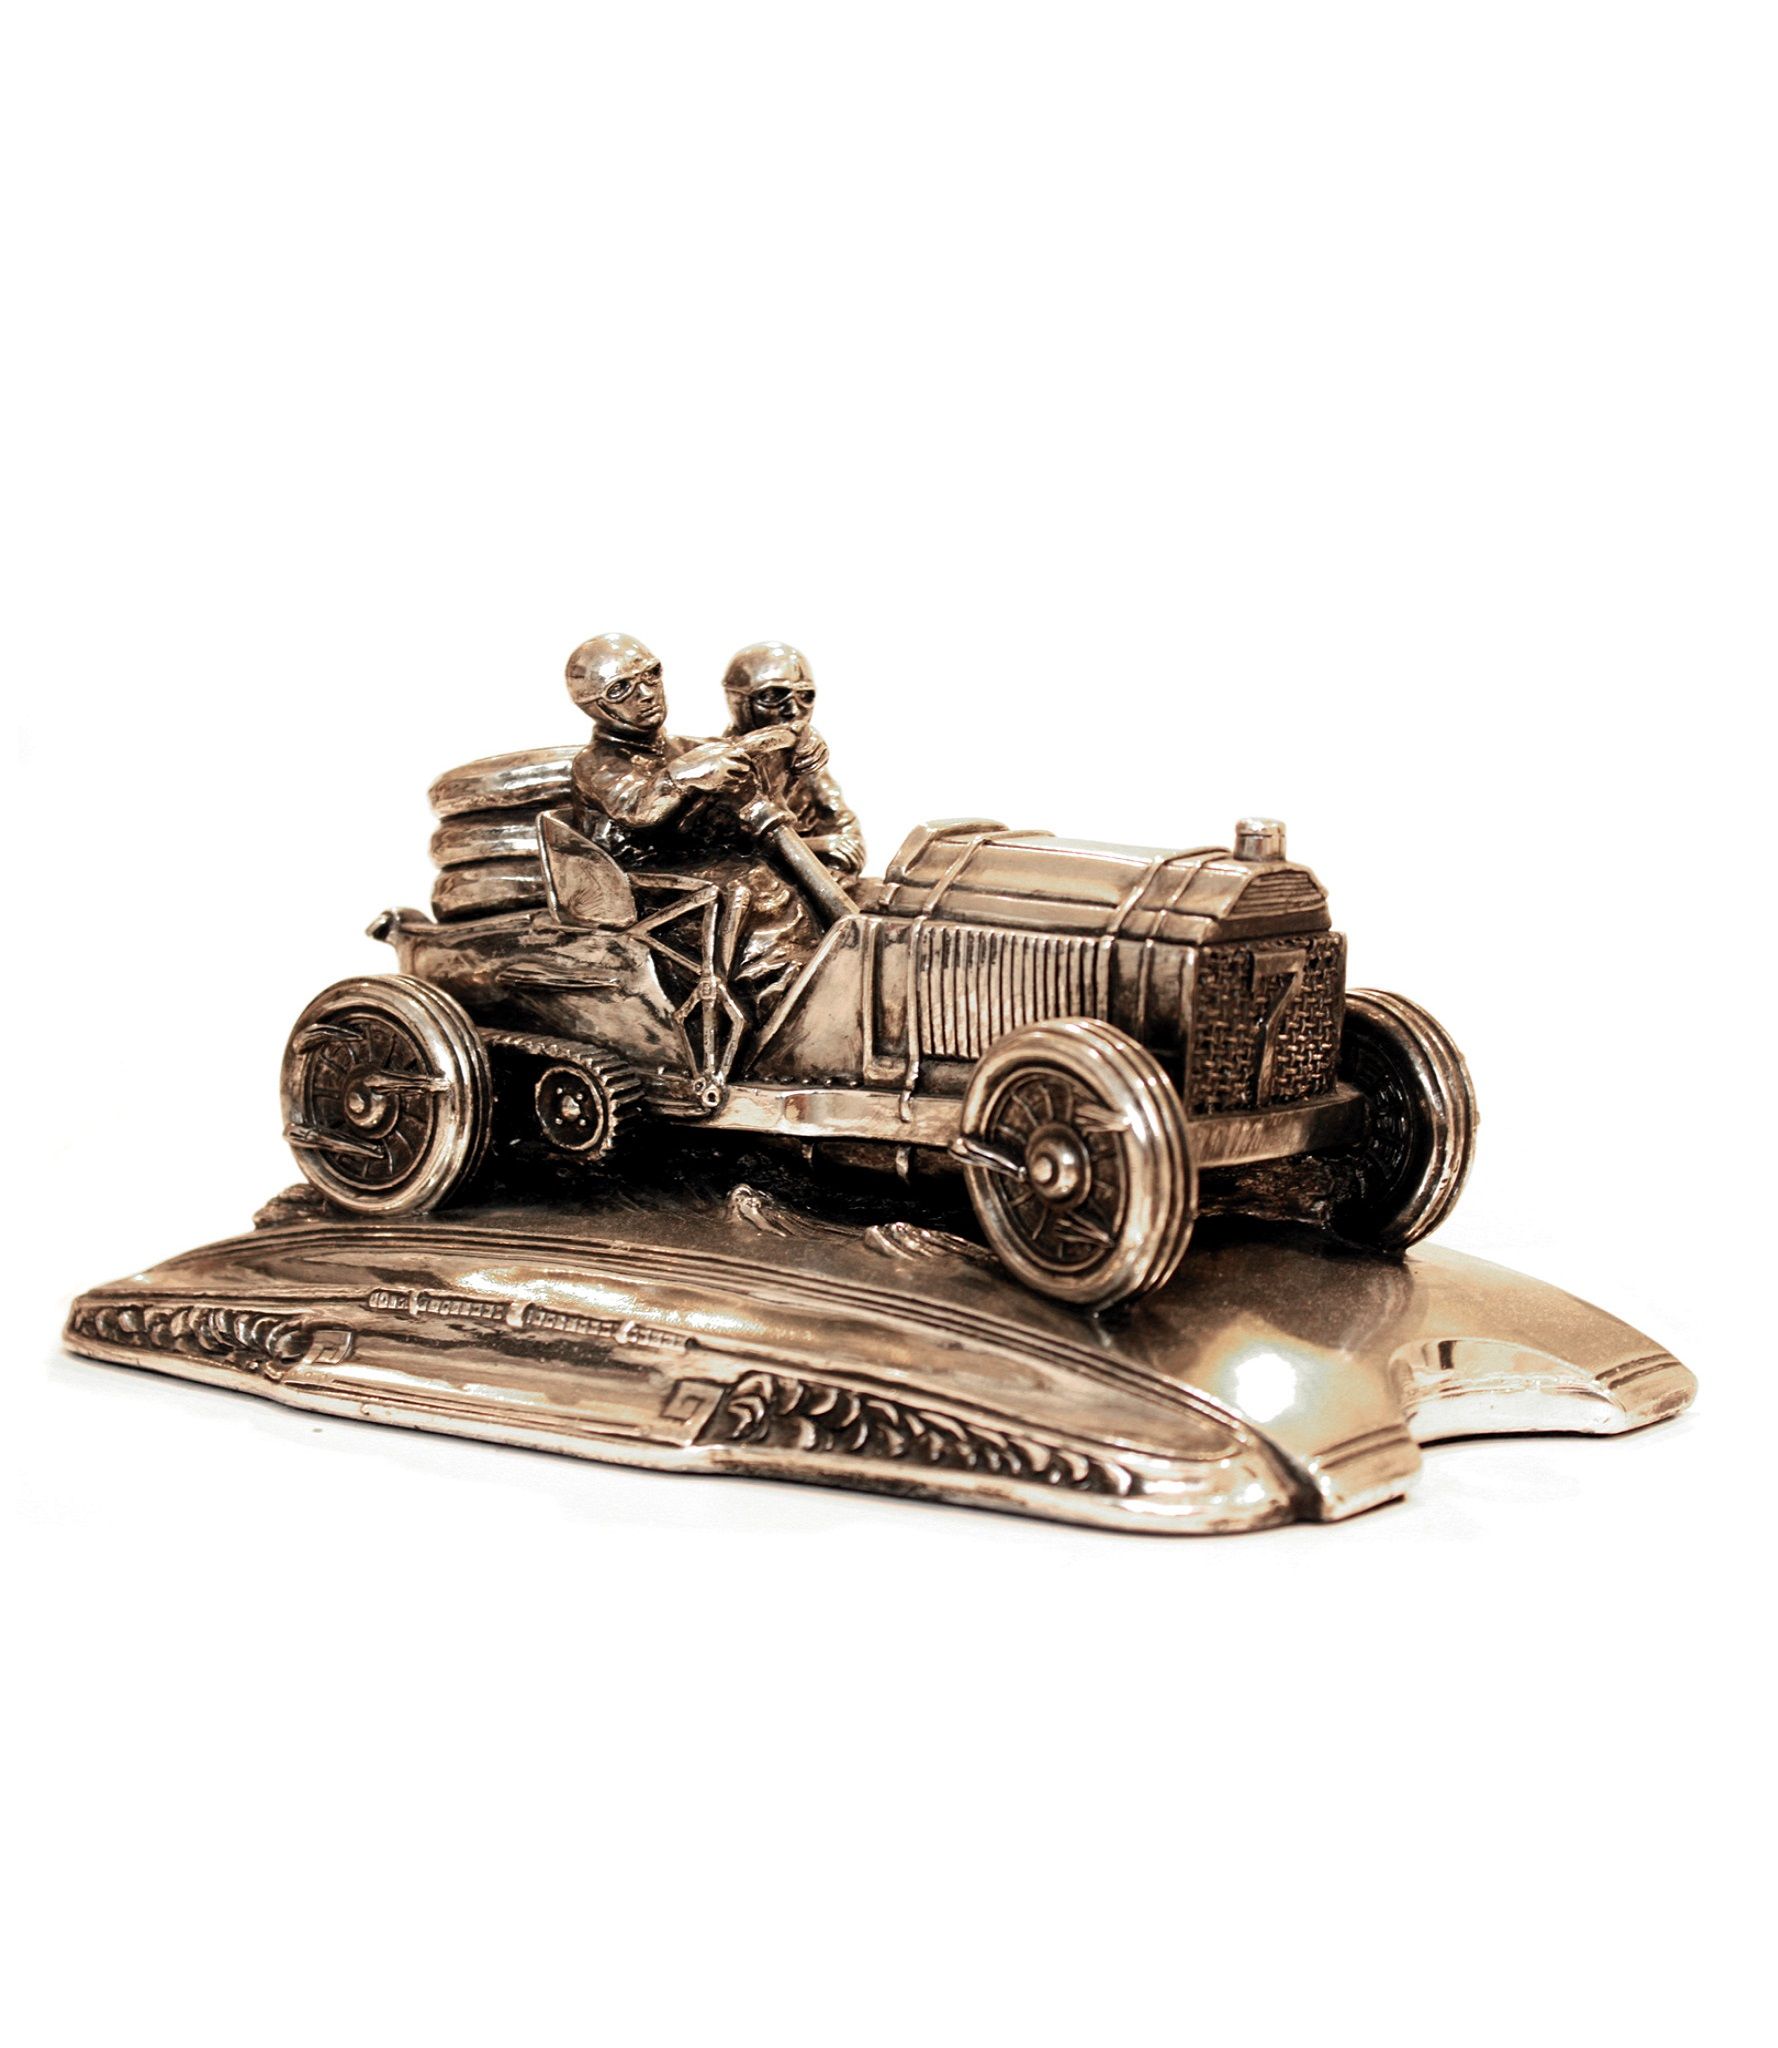 Vintage Racing Car Pencil Holder